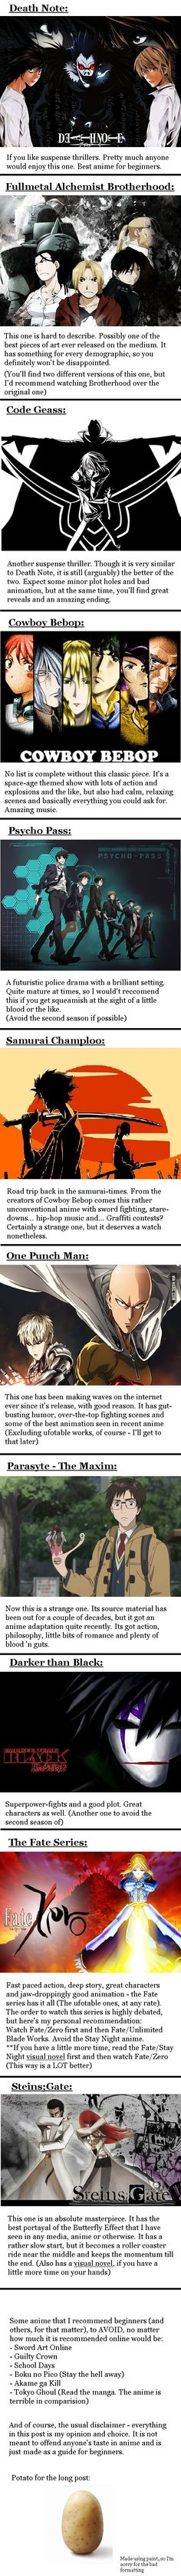 For all those people who are interested in anime, but don't know where to start, here's a simple